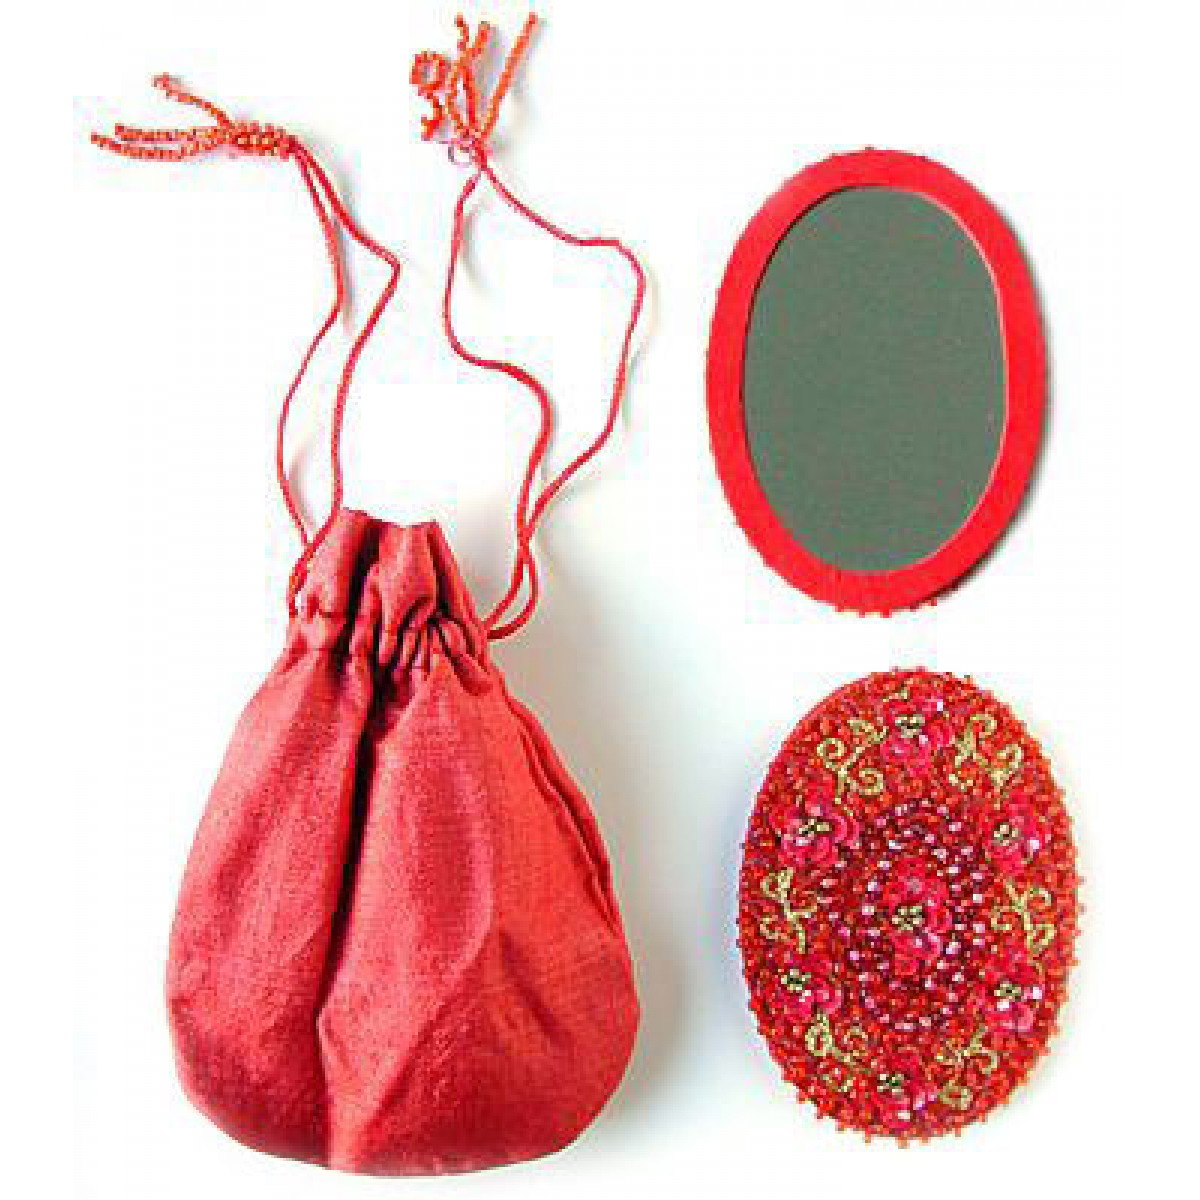 Handheld Mirror in a Little Sac